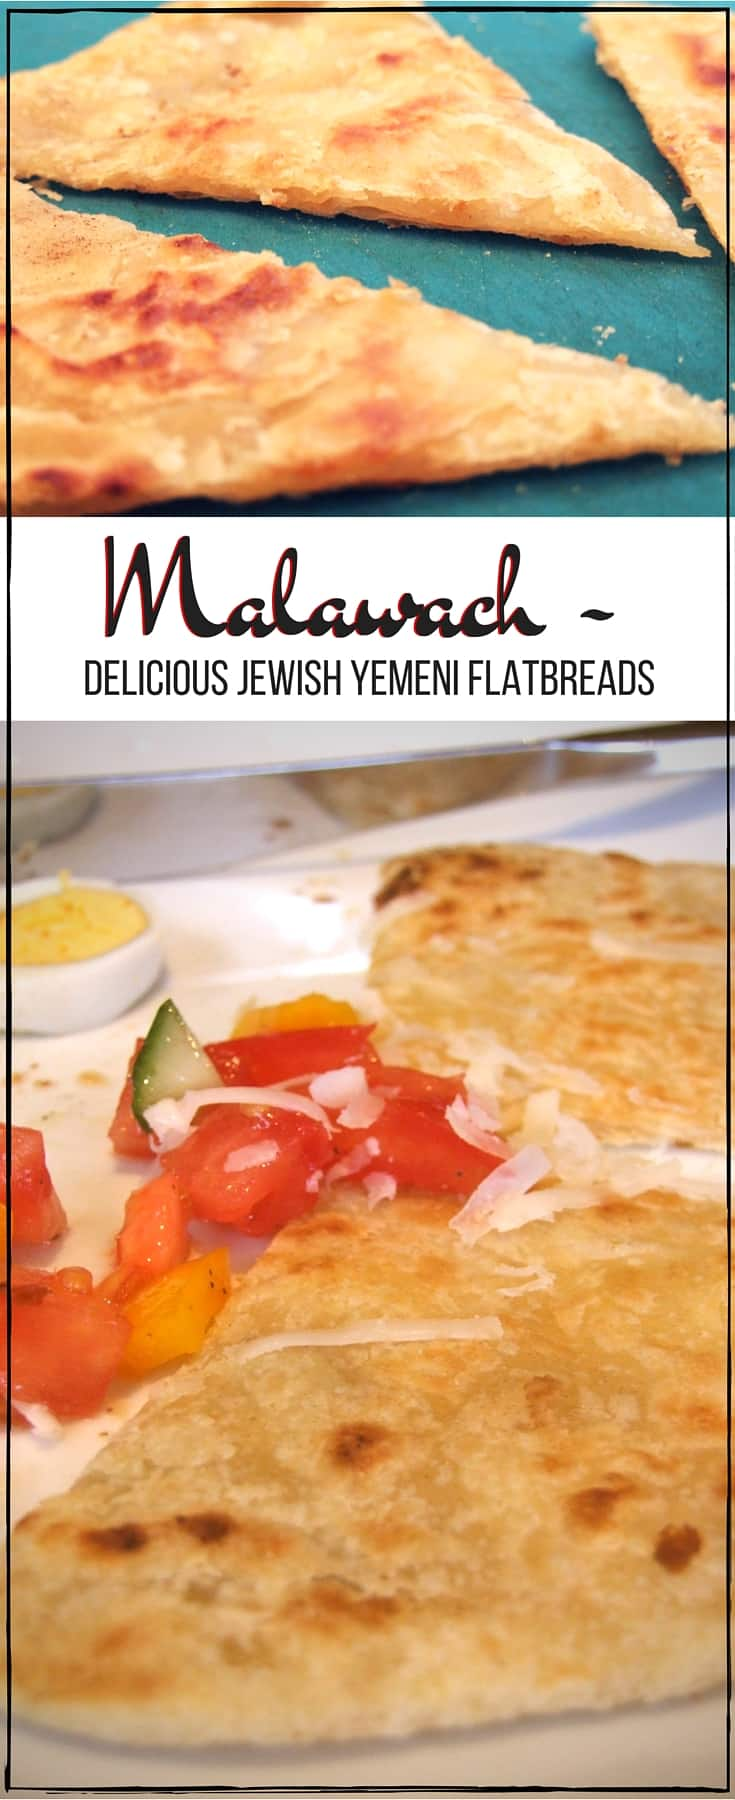 Malawach is an easy-to-make, delicious, 3-ingredient flaky fried flatbread. Serve with fresh tomatoes, cheese & eggs for a fabulous breakfast or brunch. #jewishfood #vegan #brunch #flatbread